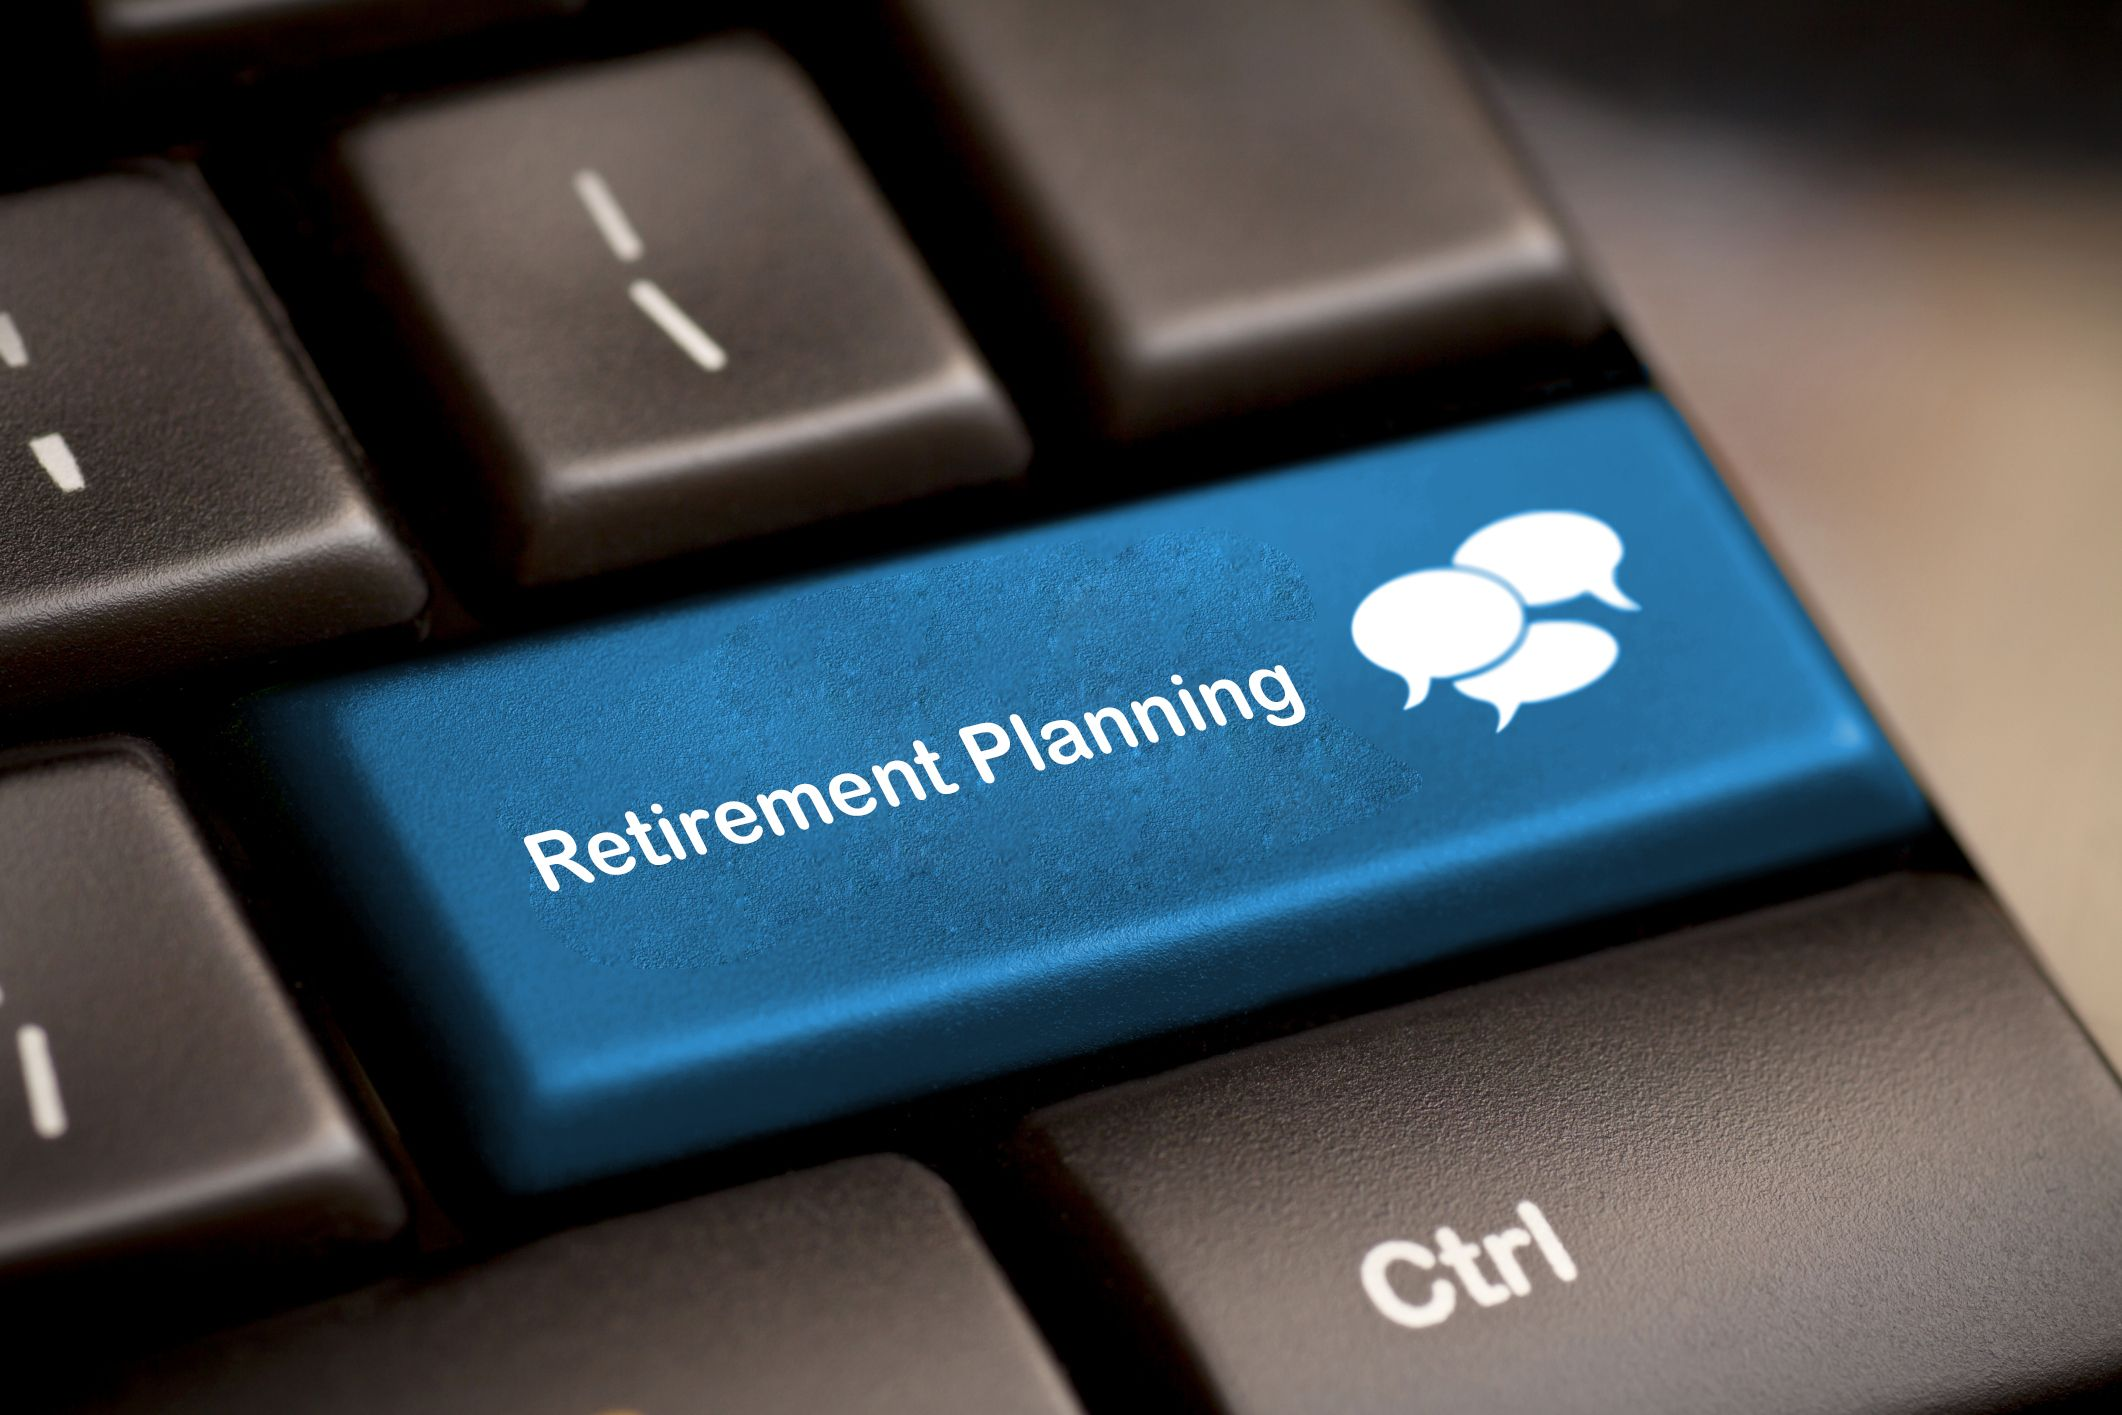 Do you know how much time and money you save doing stuff online? Then why not save time and money planning retirement online? Do smart retirement planning online on Dear 401k J and save more time and money for your retirement. All you have to do is create an account and start planning your retirement online.